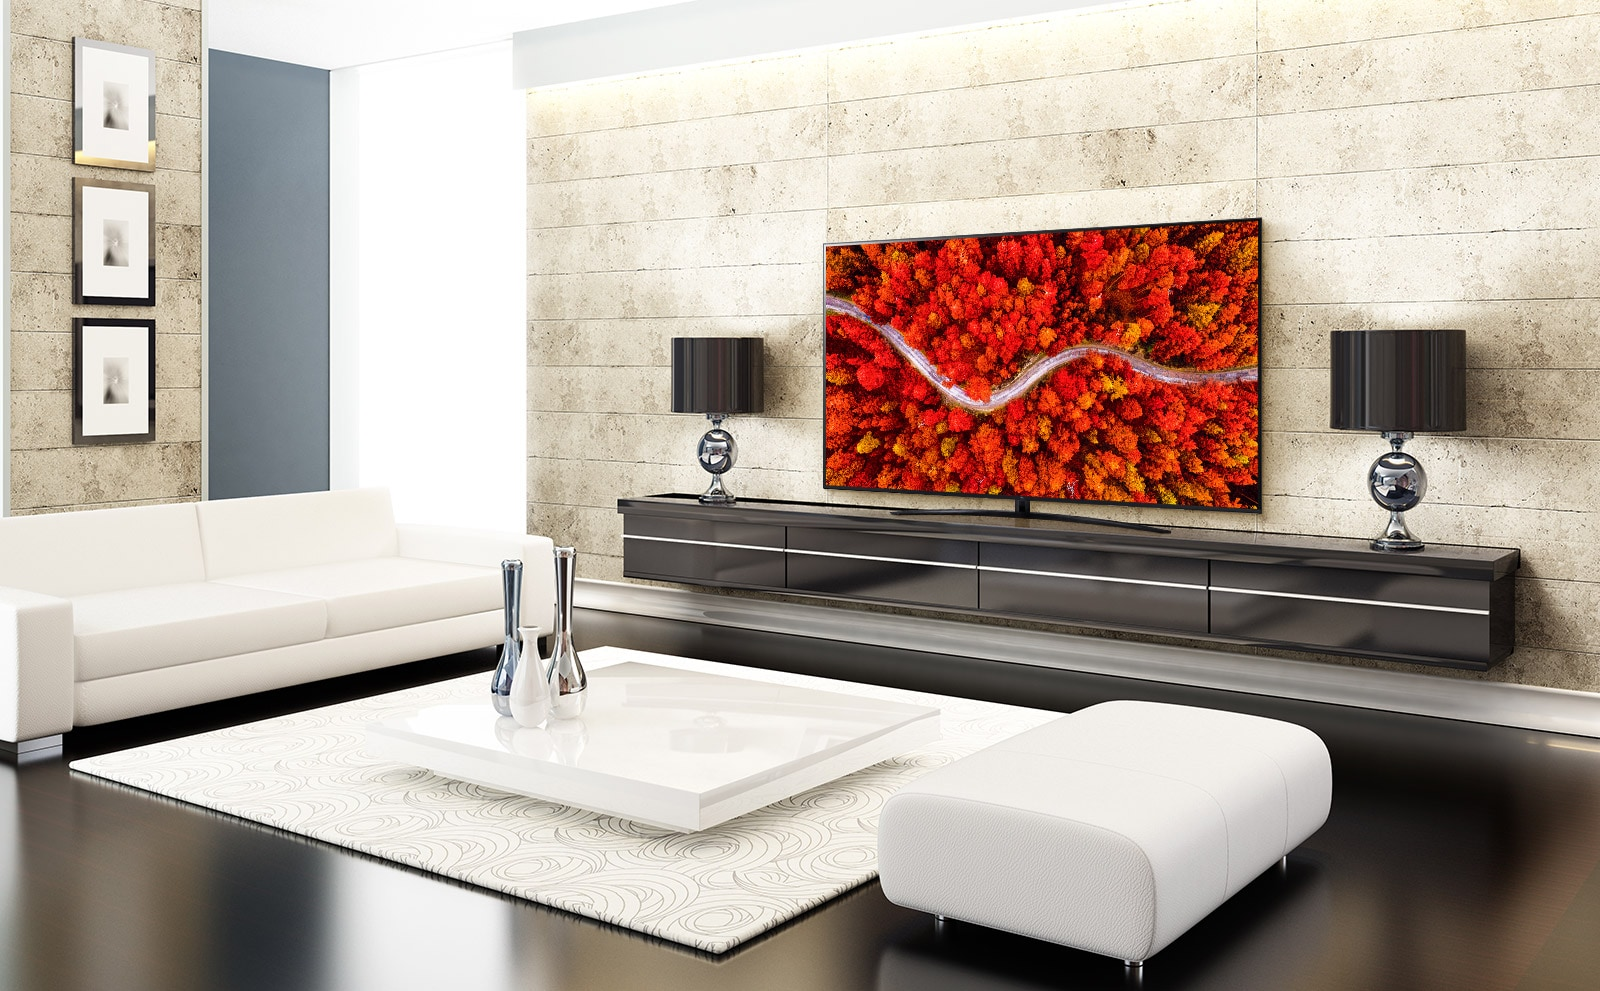 A luxury living room with a TV displaying an aerial view of woods in red.